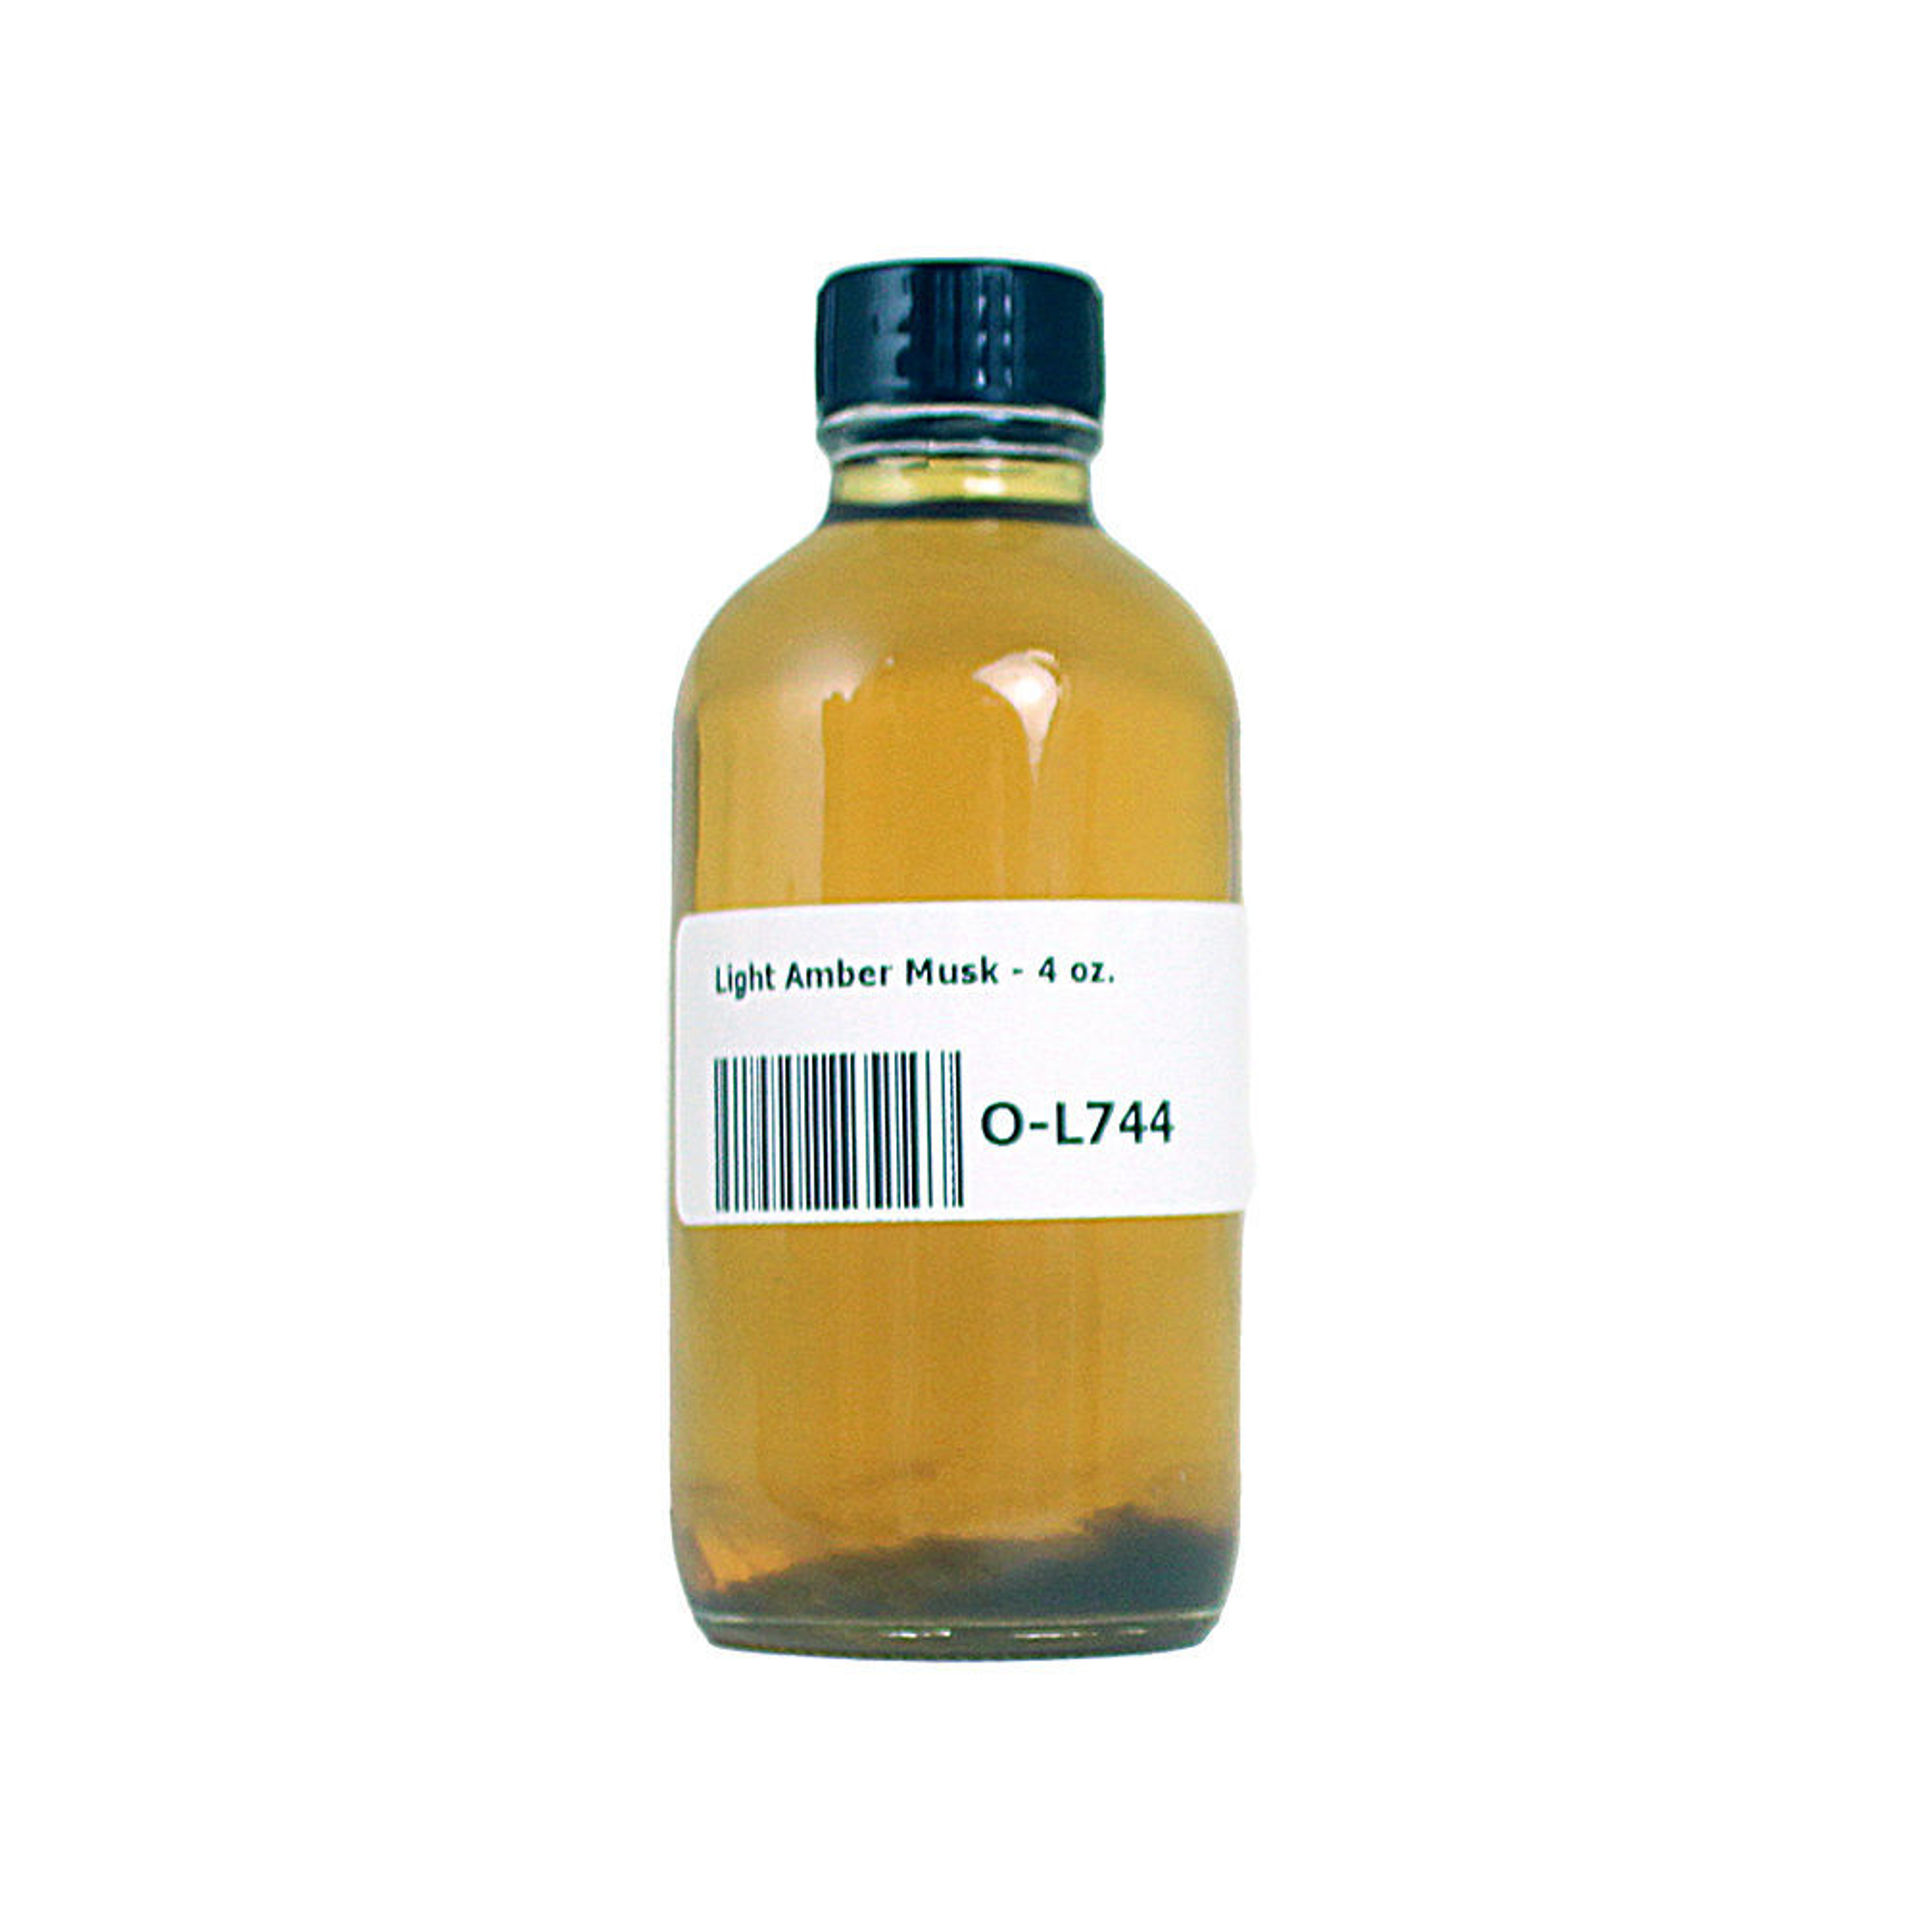 Picture of Light Amber Musk - 4 oz.